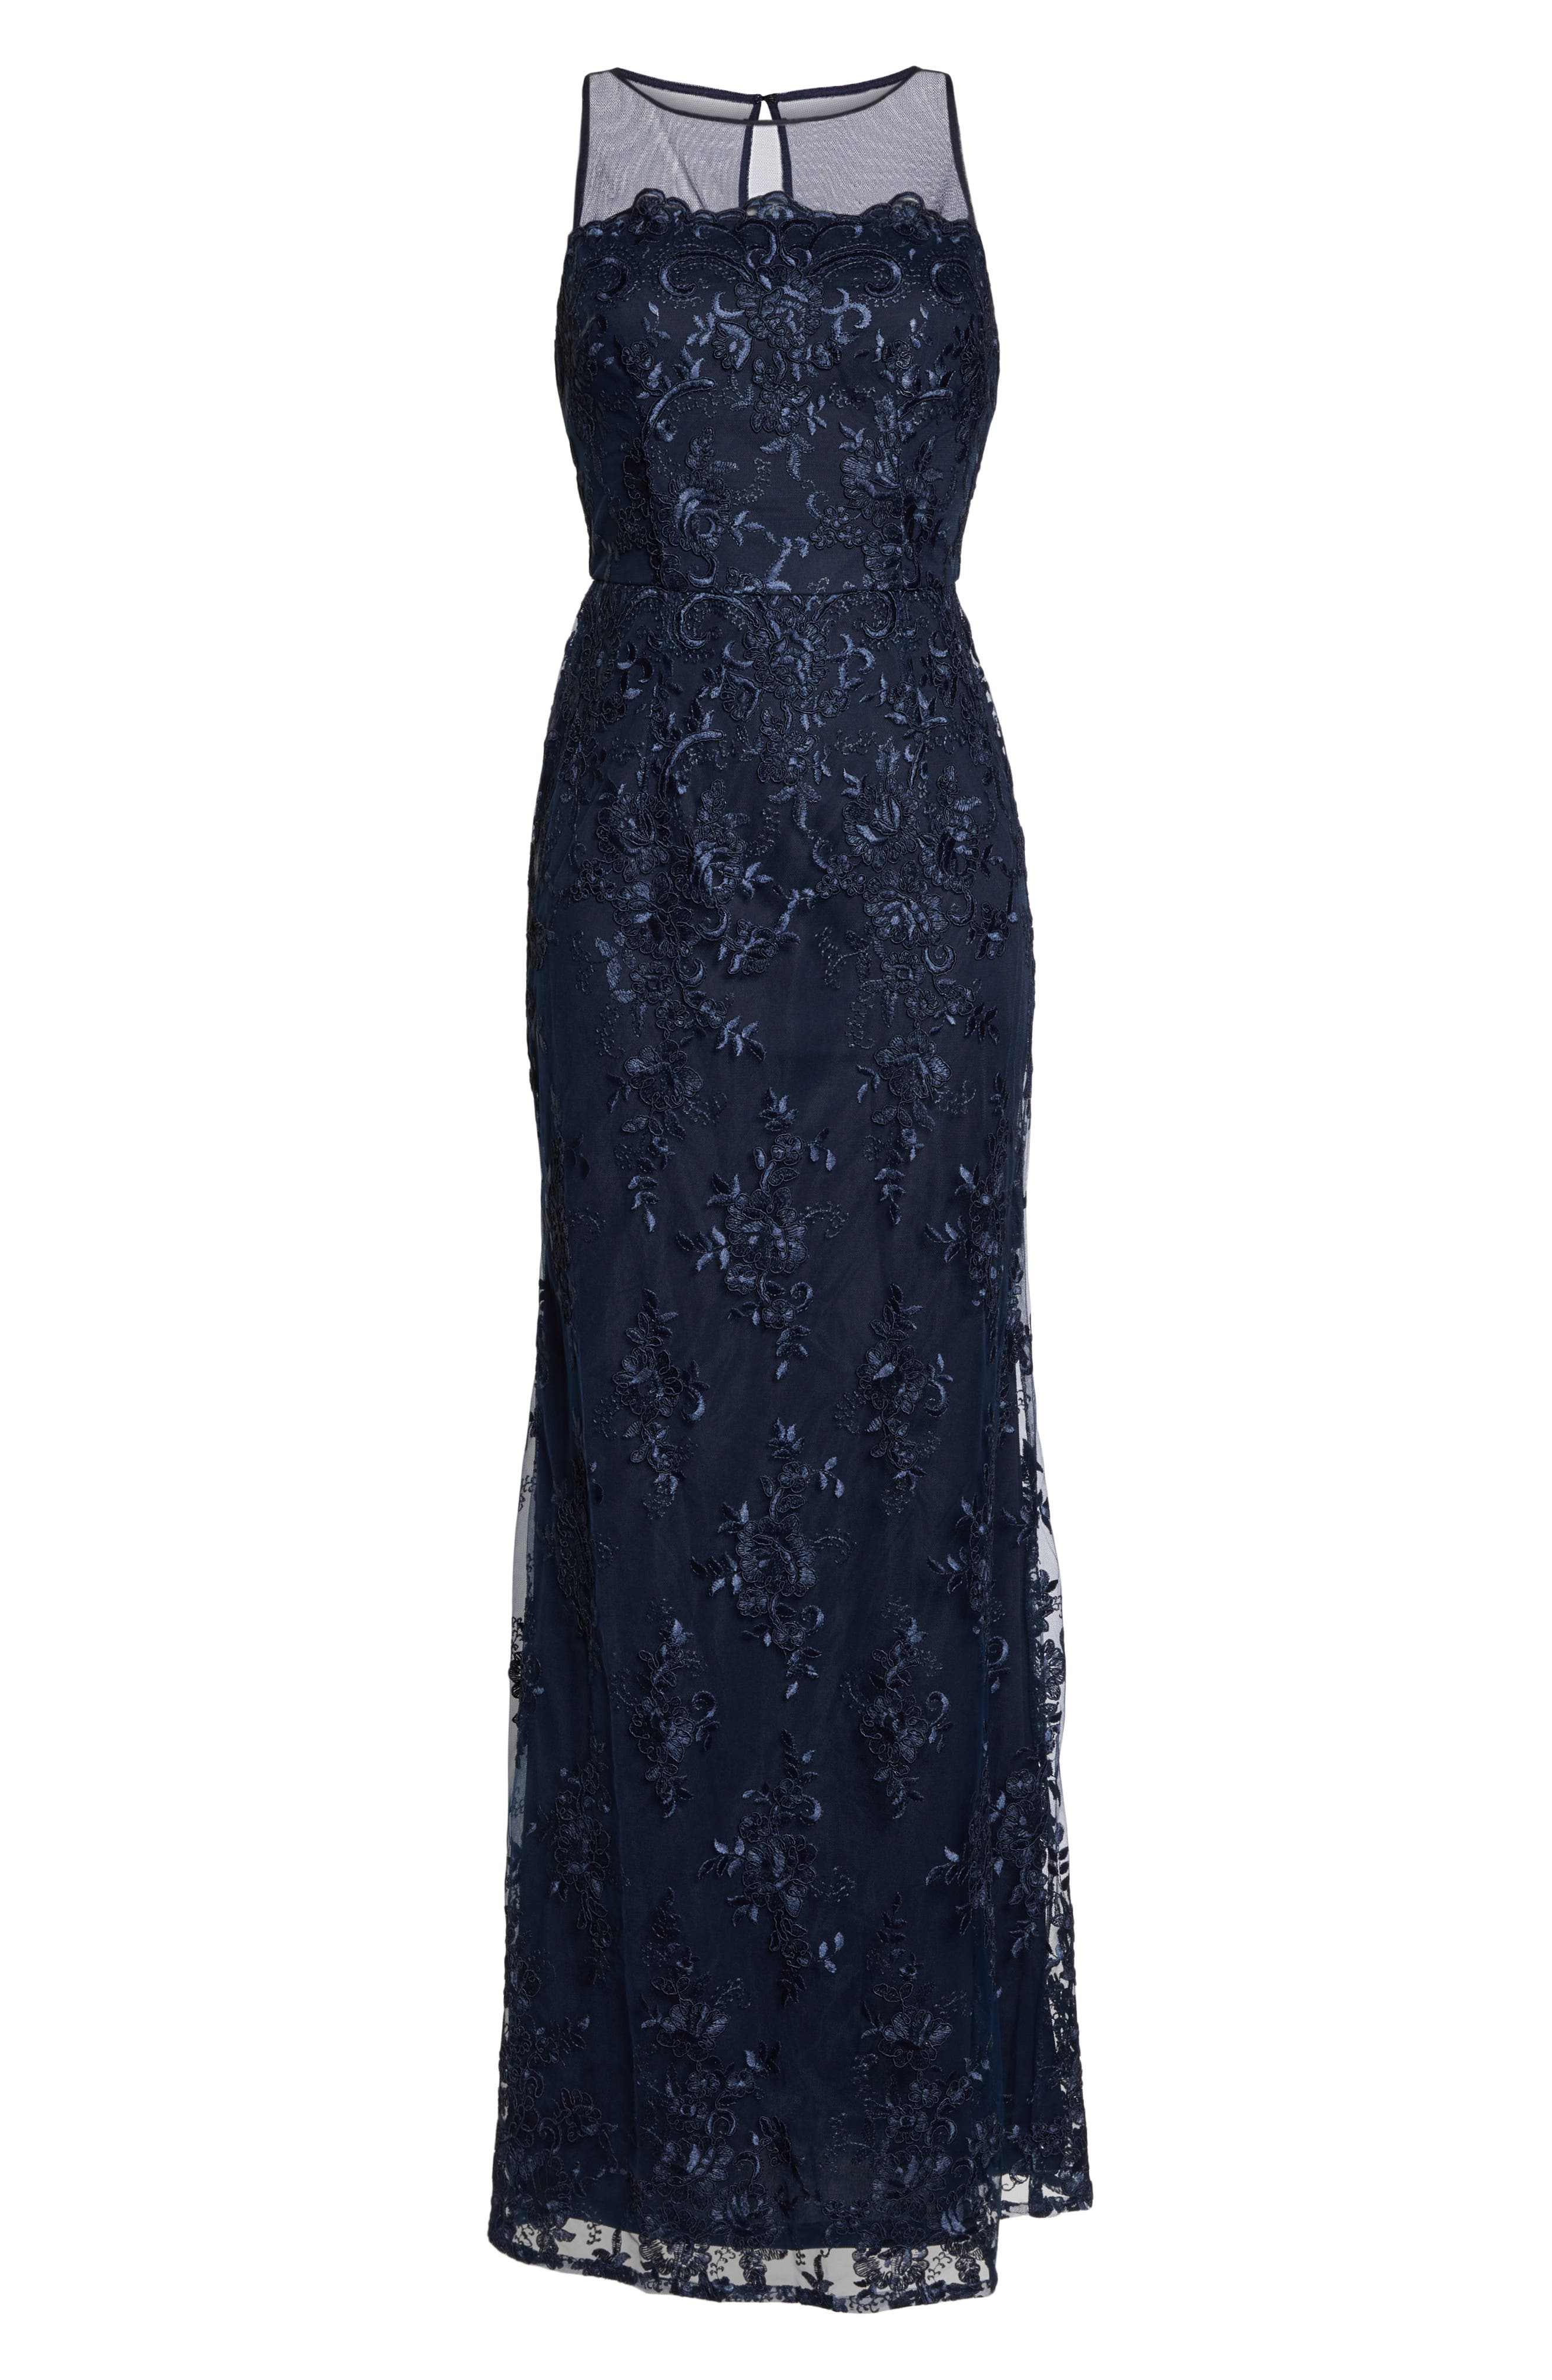 ADRIANNA PAPELL,                             Corded Lace Evening Dress,                             Alternate thumbnail 7, color,                             MIDNIGHT